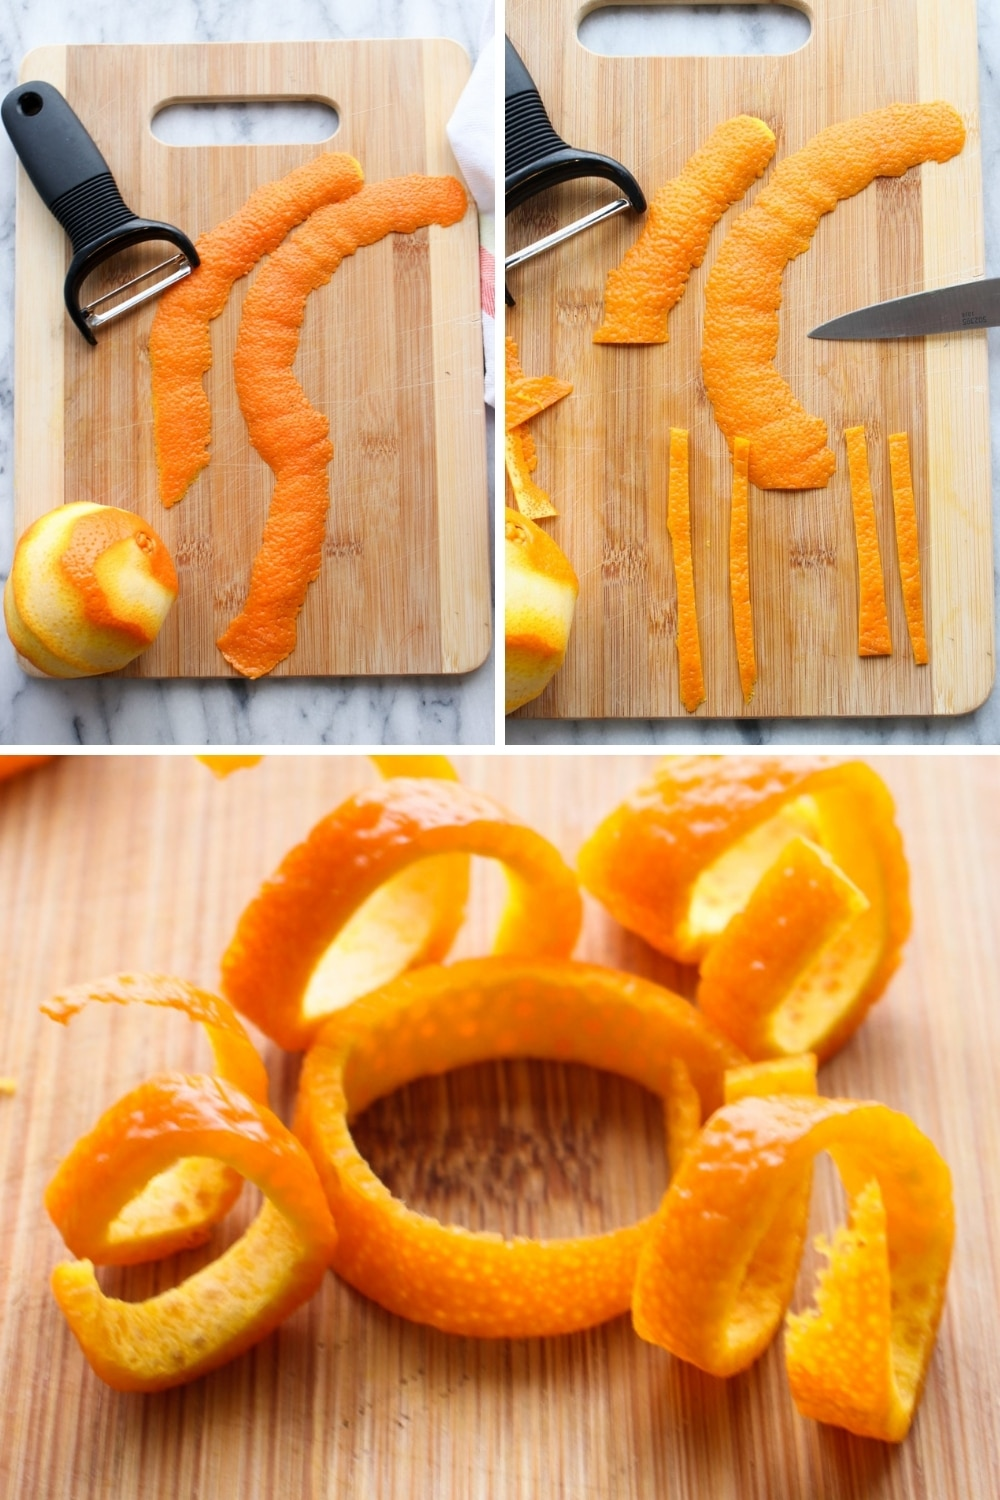 Collage showing steps to make apple cider margarita orange peel curl garnish